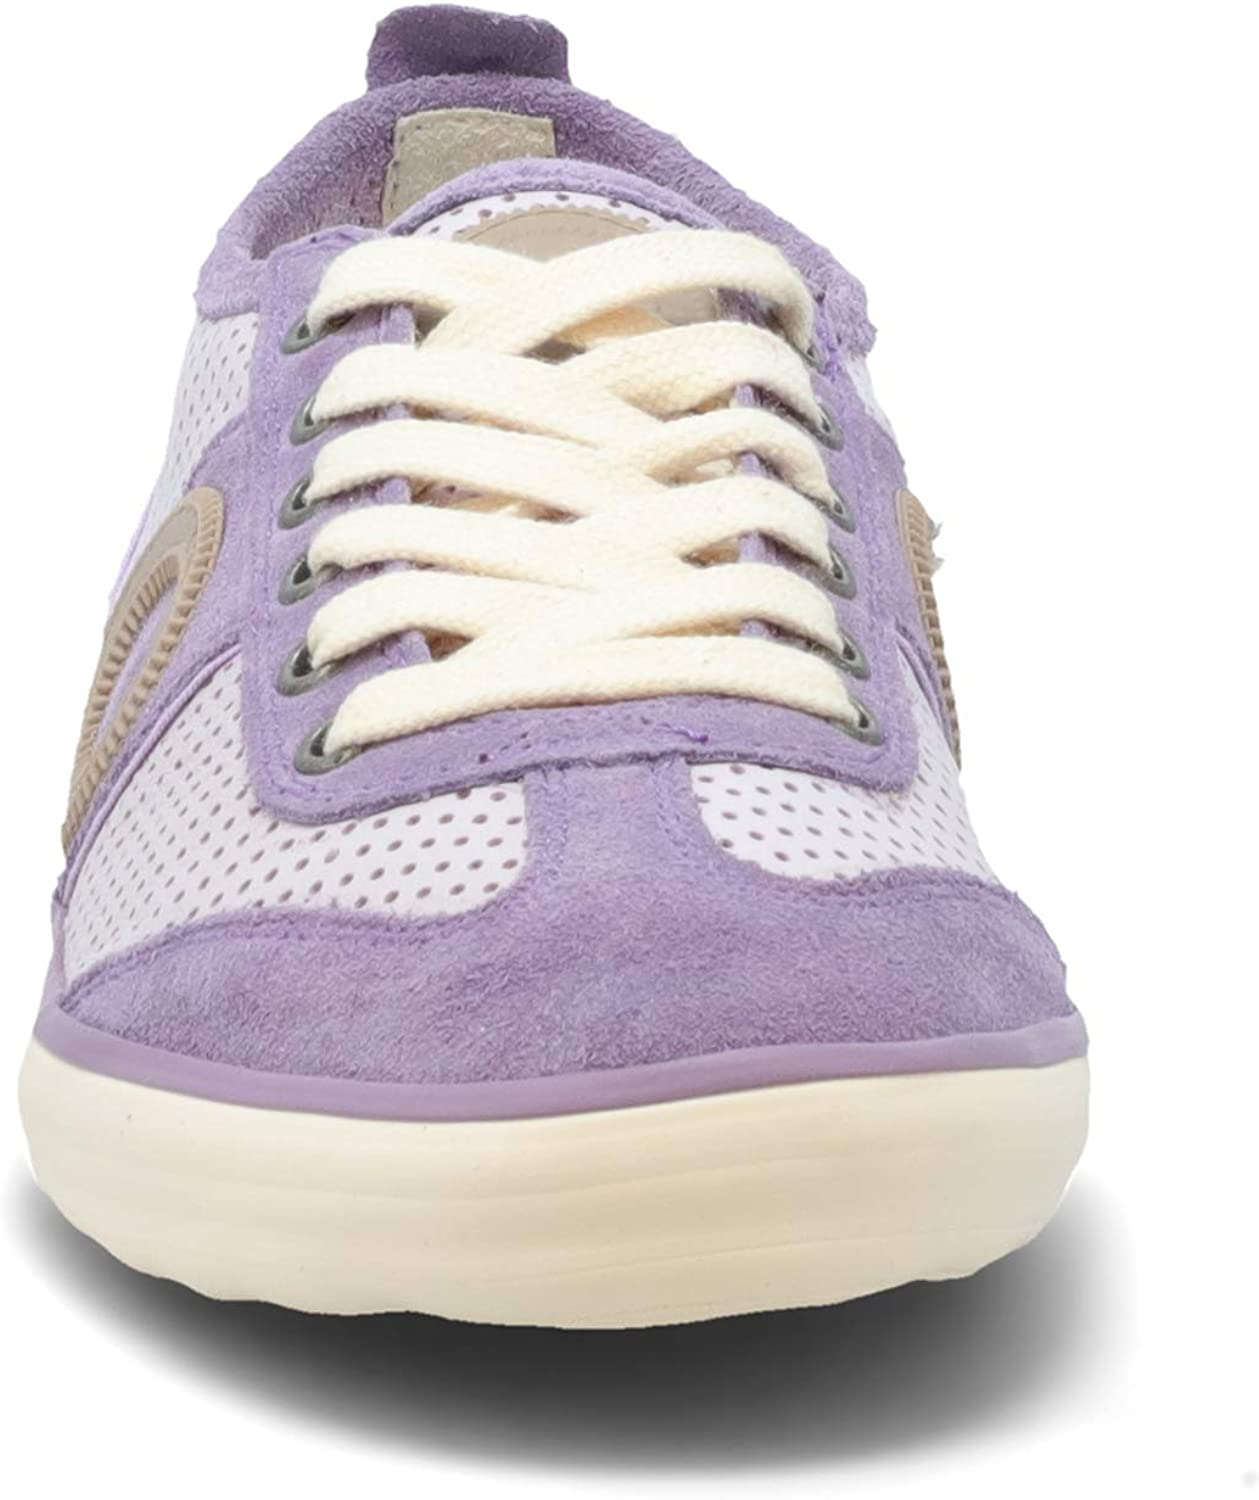 ARO Picada Women's Leather Sneaker Lavender